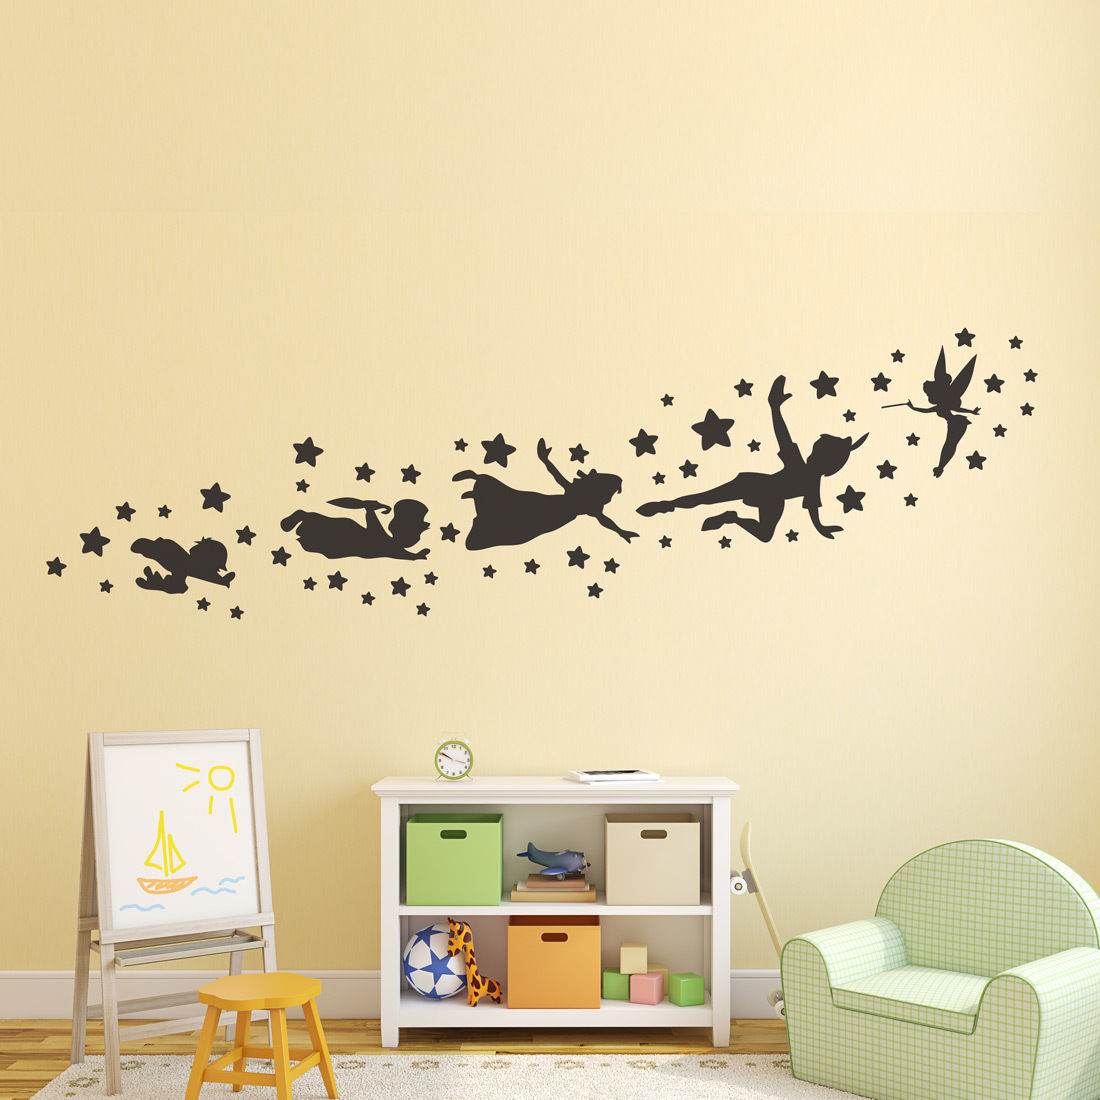 Peter pan wall decal removable vinyl sticker mural christmas kids ...